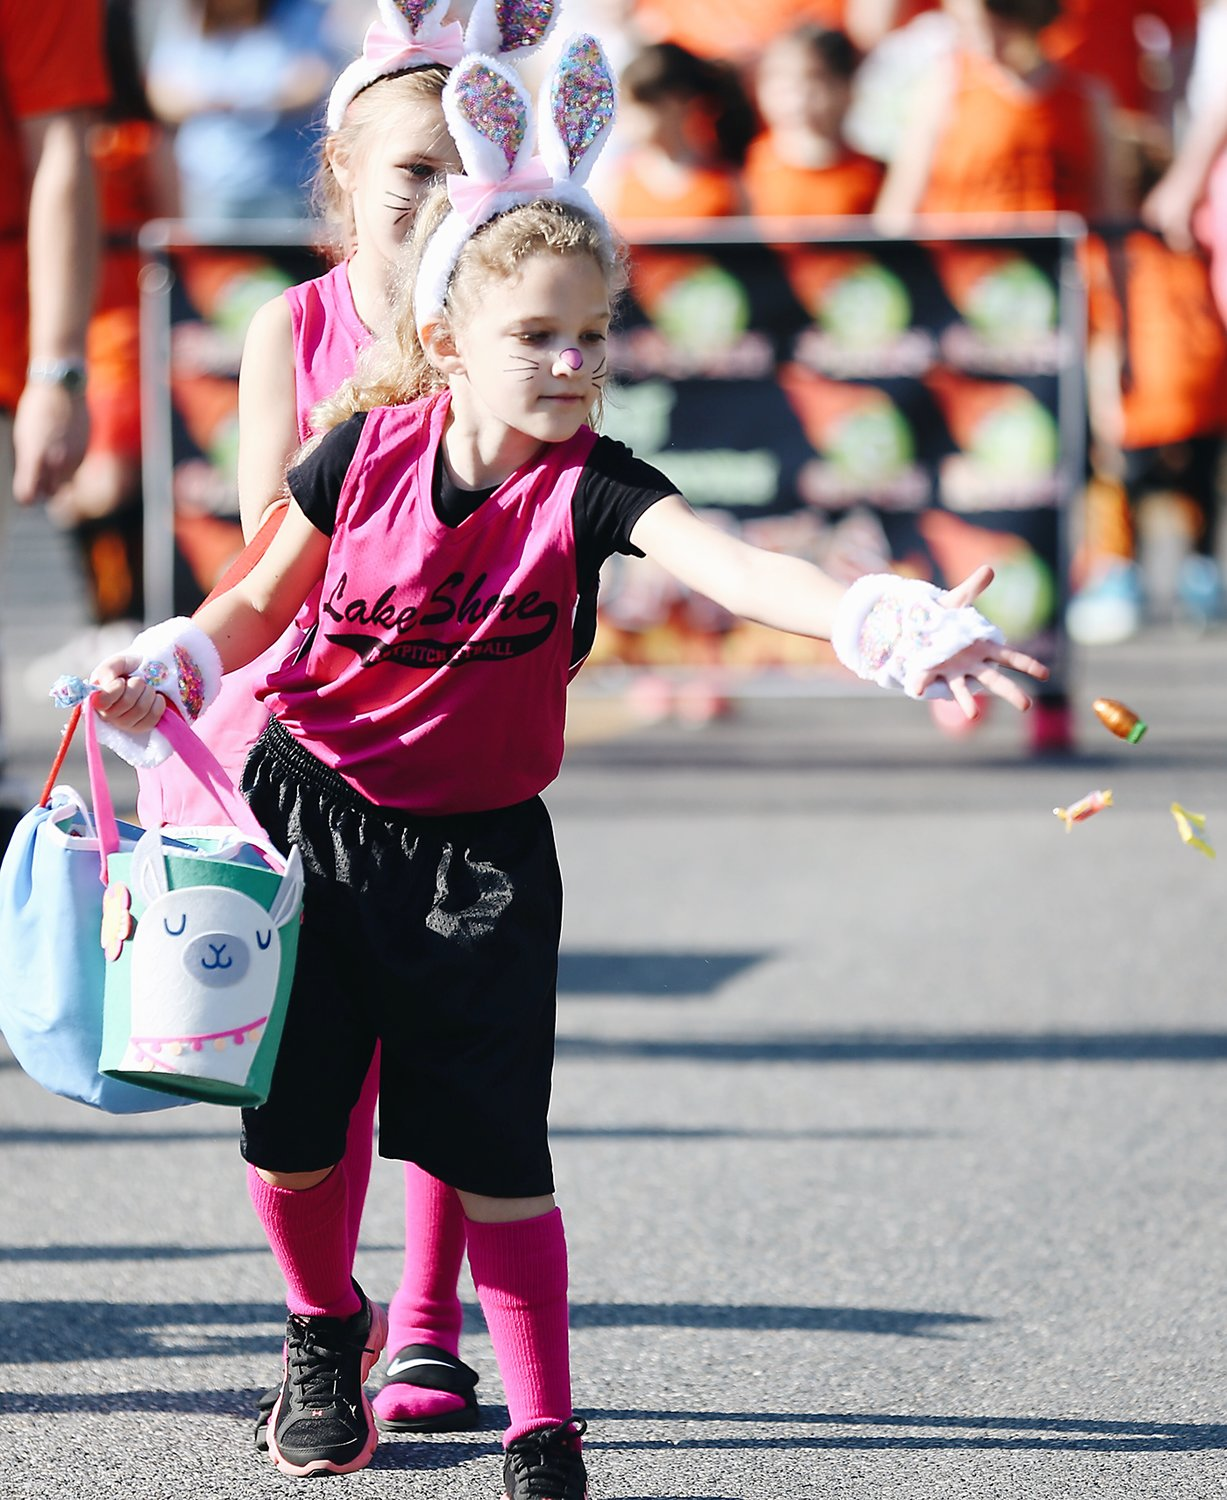 Pasadena's youth recreational baseball and softball teams were able to start their seasons with Opening Day ceremonies and parades on April 15.